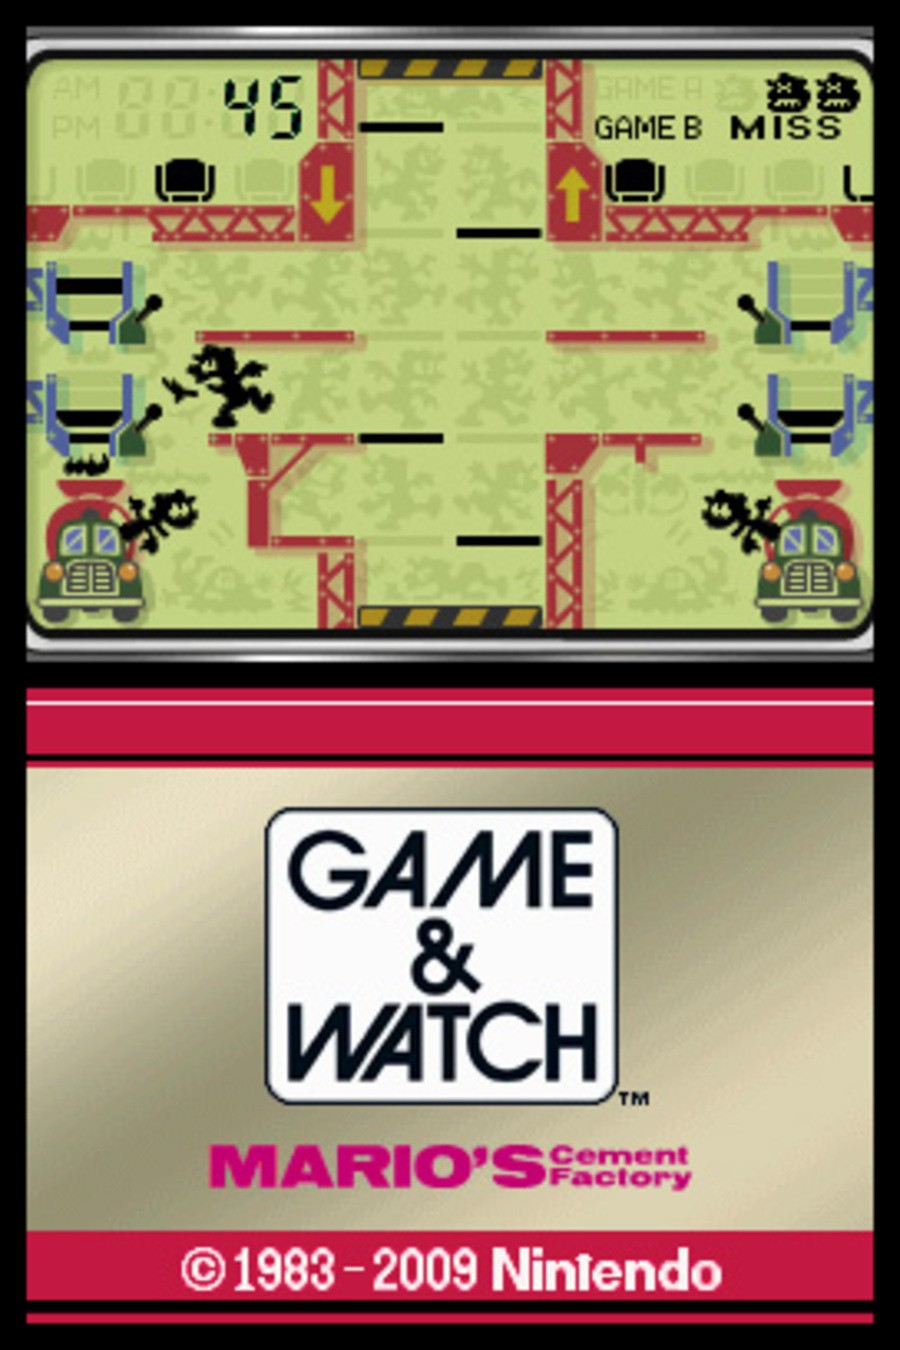 Game & Watch Mario's Cement Factory Screenshot